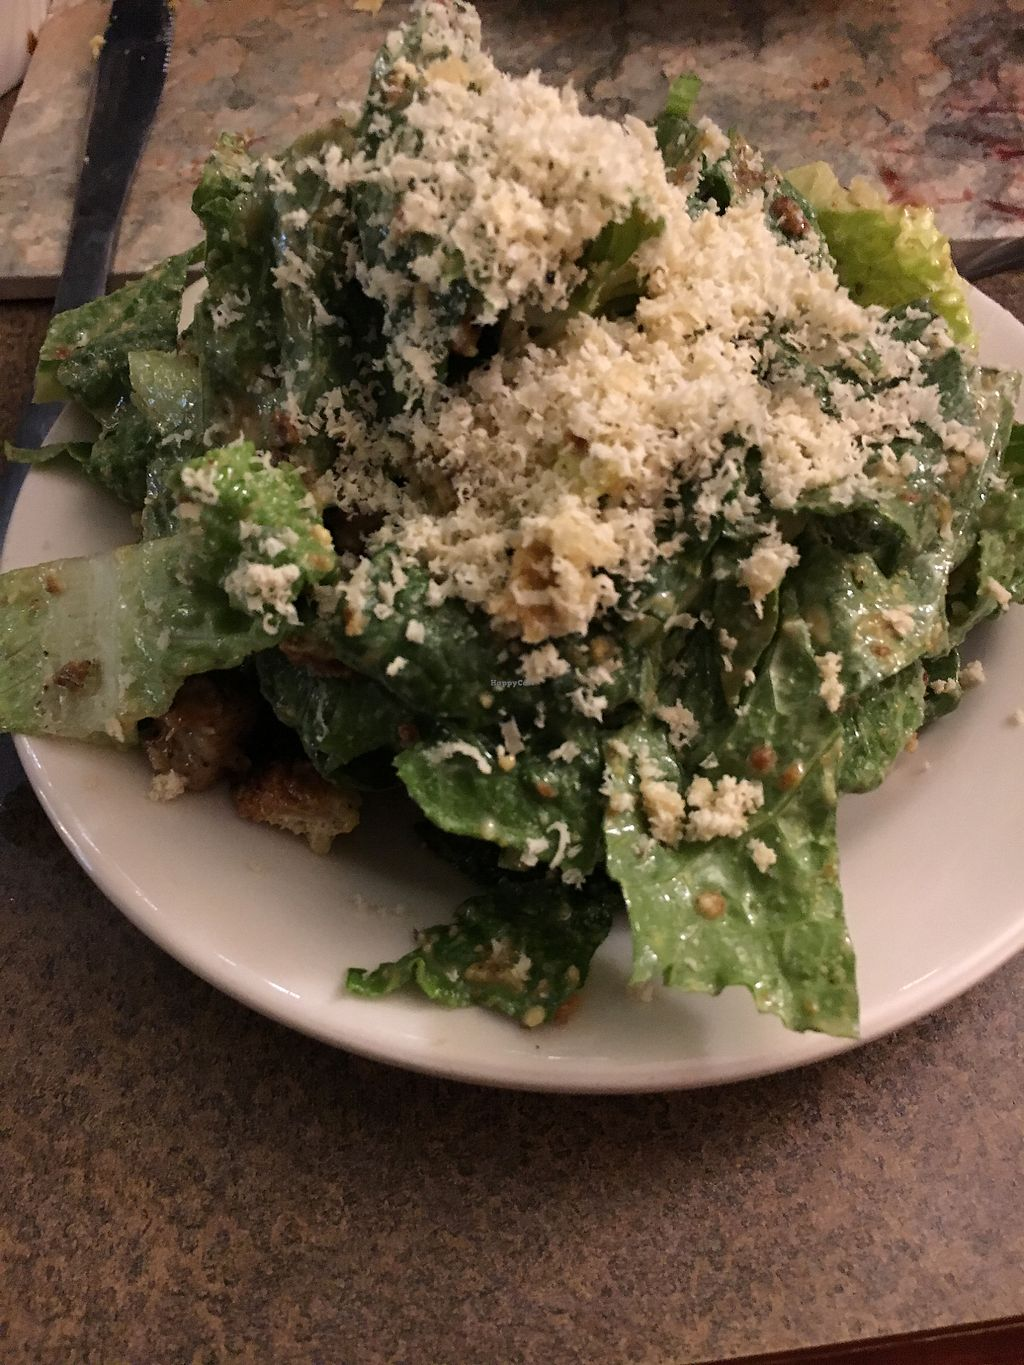 """Photo of Vtopia Cheese Shop and Deli  by <a href=""""/members/profile/kaleyeah87"""">kaleyeah87</a> <br/>Caesar salad-really good ?  <br/> December 31, 2017  - <a href='/contact/abuse/image/59803/341155'>Report</a>"""